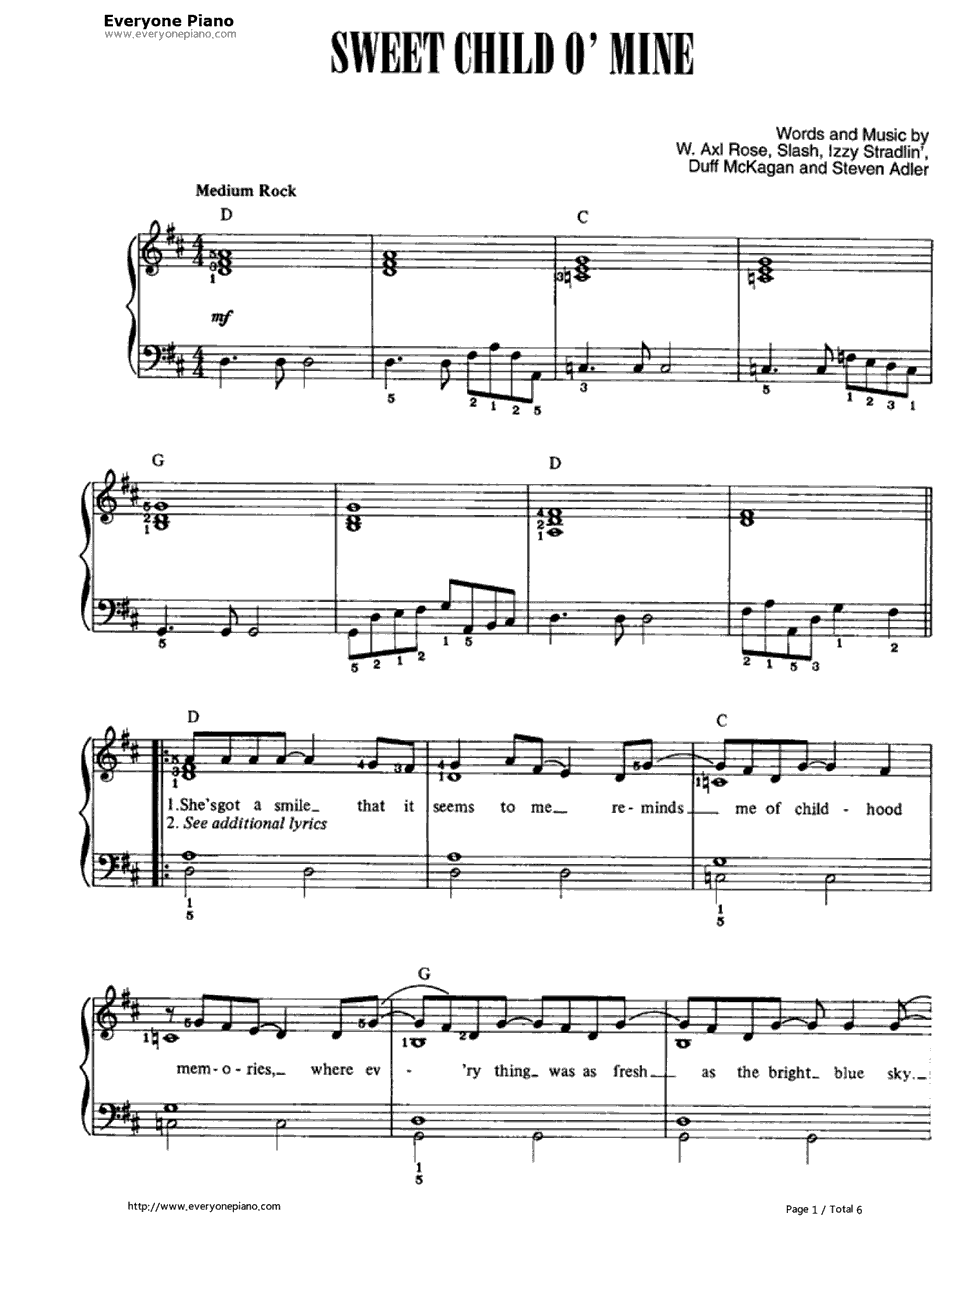 Sweet Child Ou0026#39; Mine-Guns Nu0026#39; Roses Stave Preview 1-Free Piano Sheet Music u0026 Piano Chords